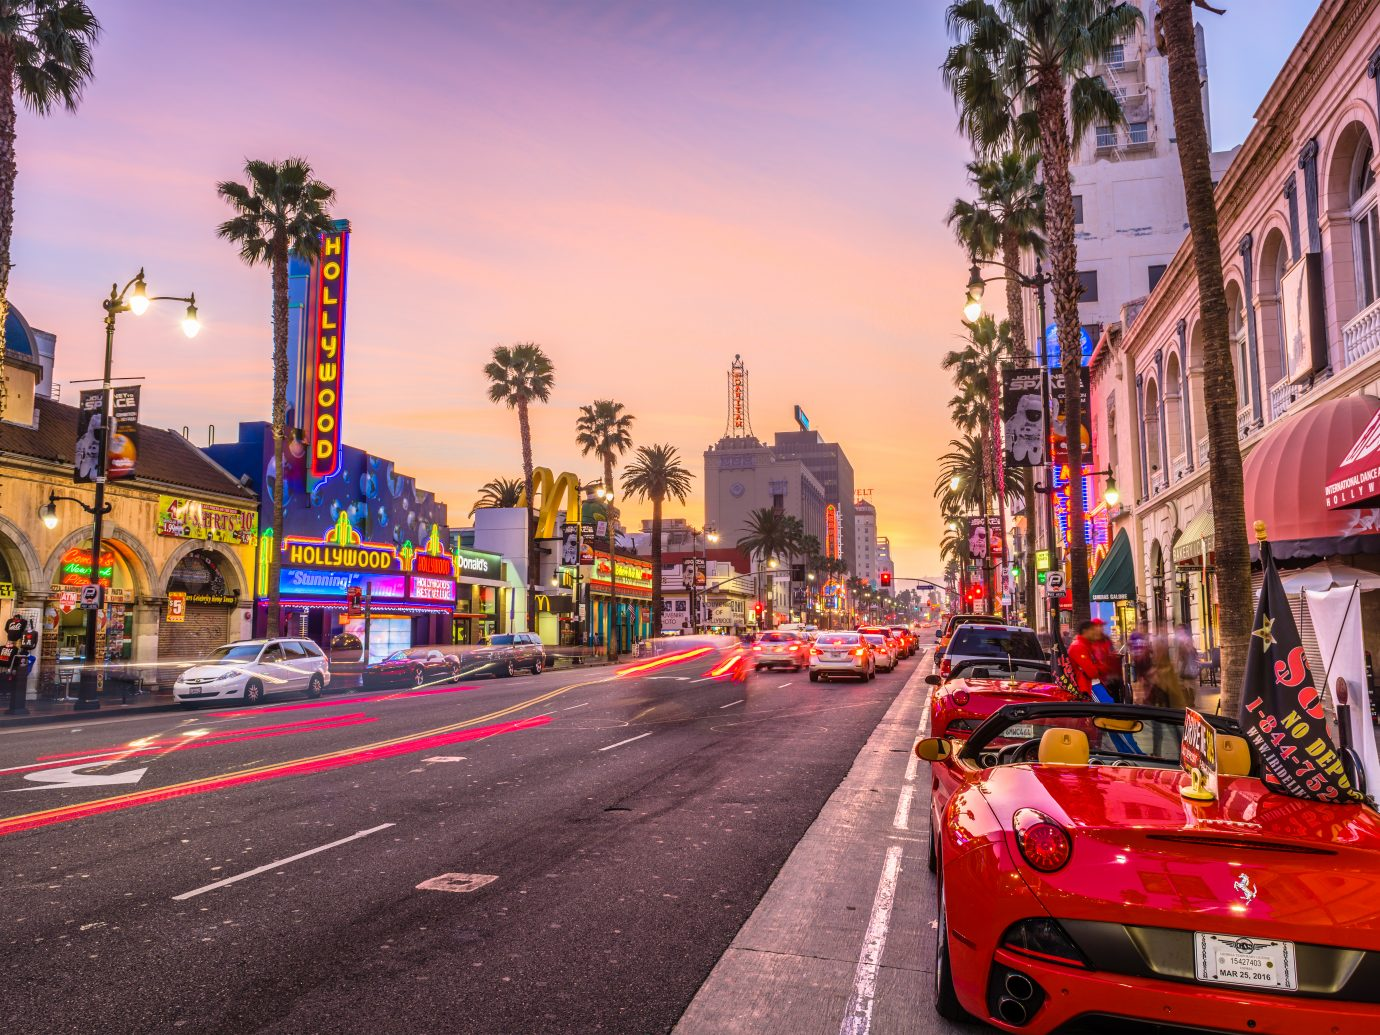 Traffic on Hollywood Boulevard at dusk